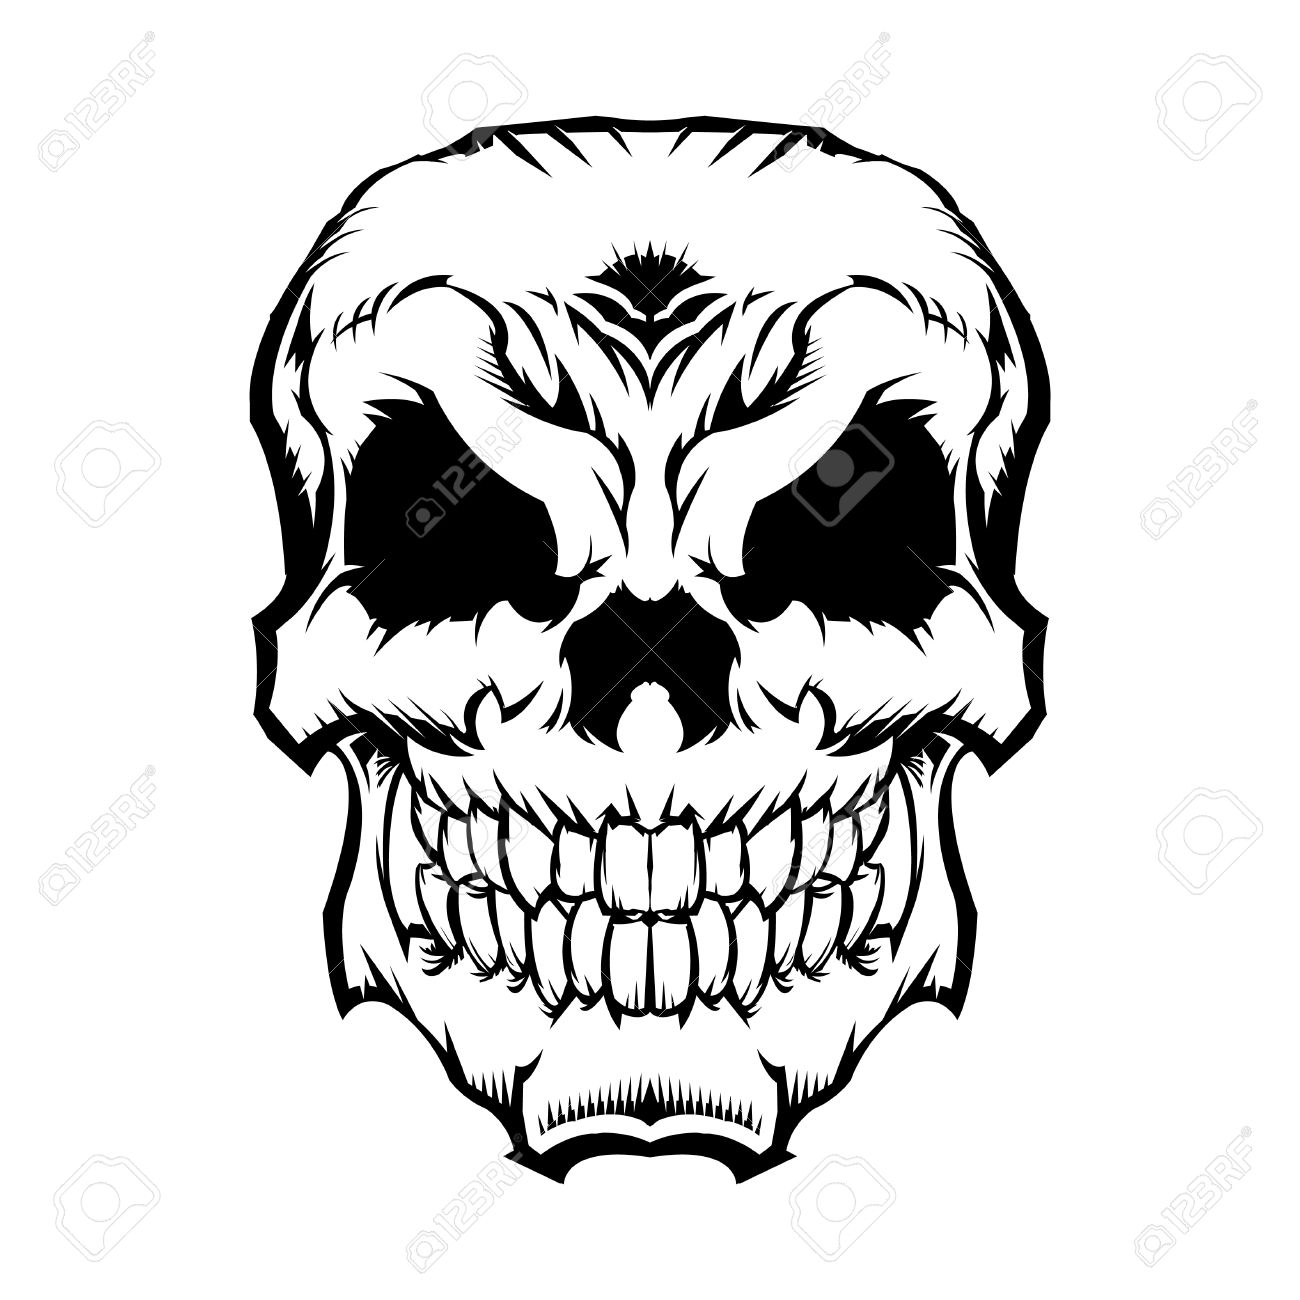 skull vector icon royalty free cliparts vectors and stock rh 123rf com vector skull images free download skull vector